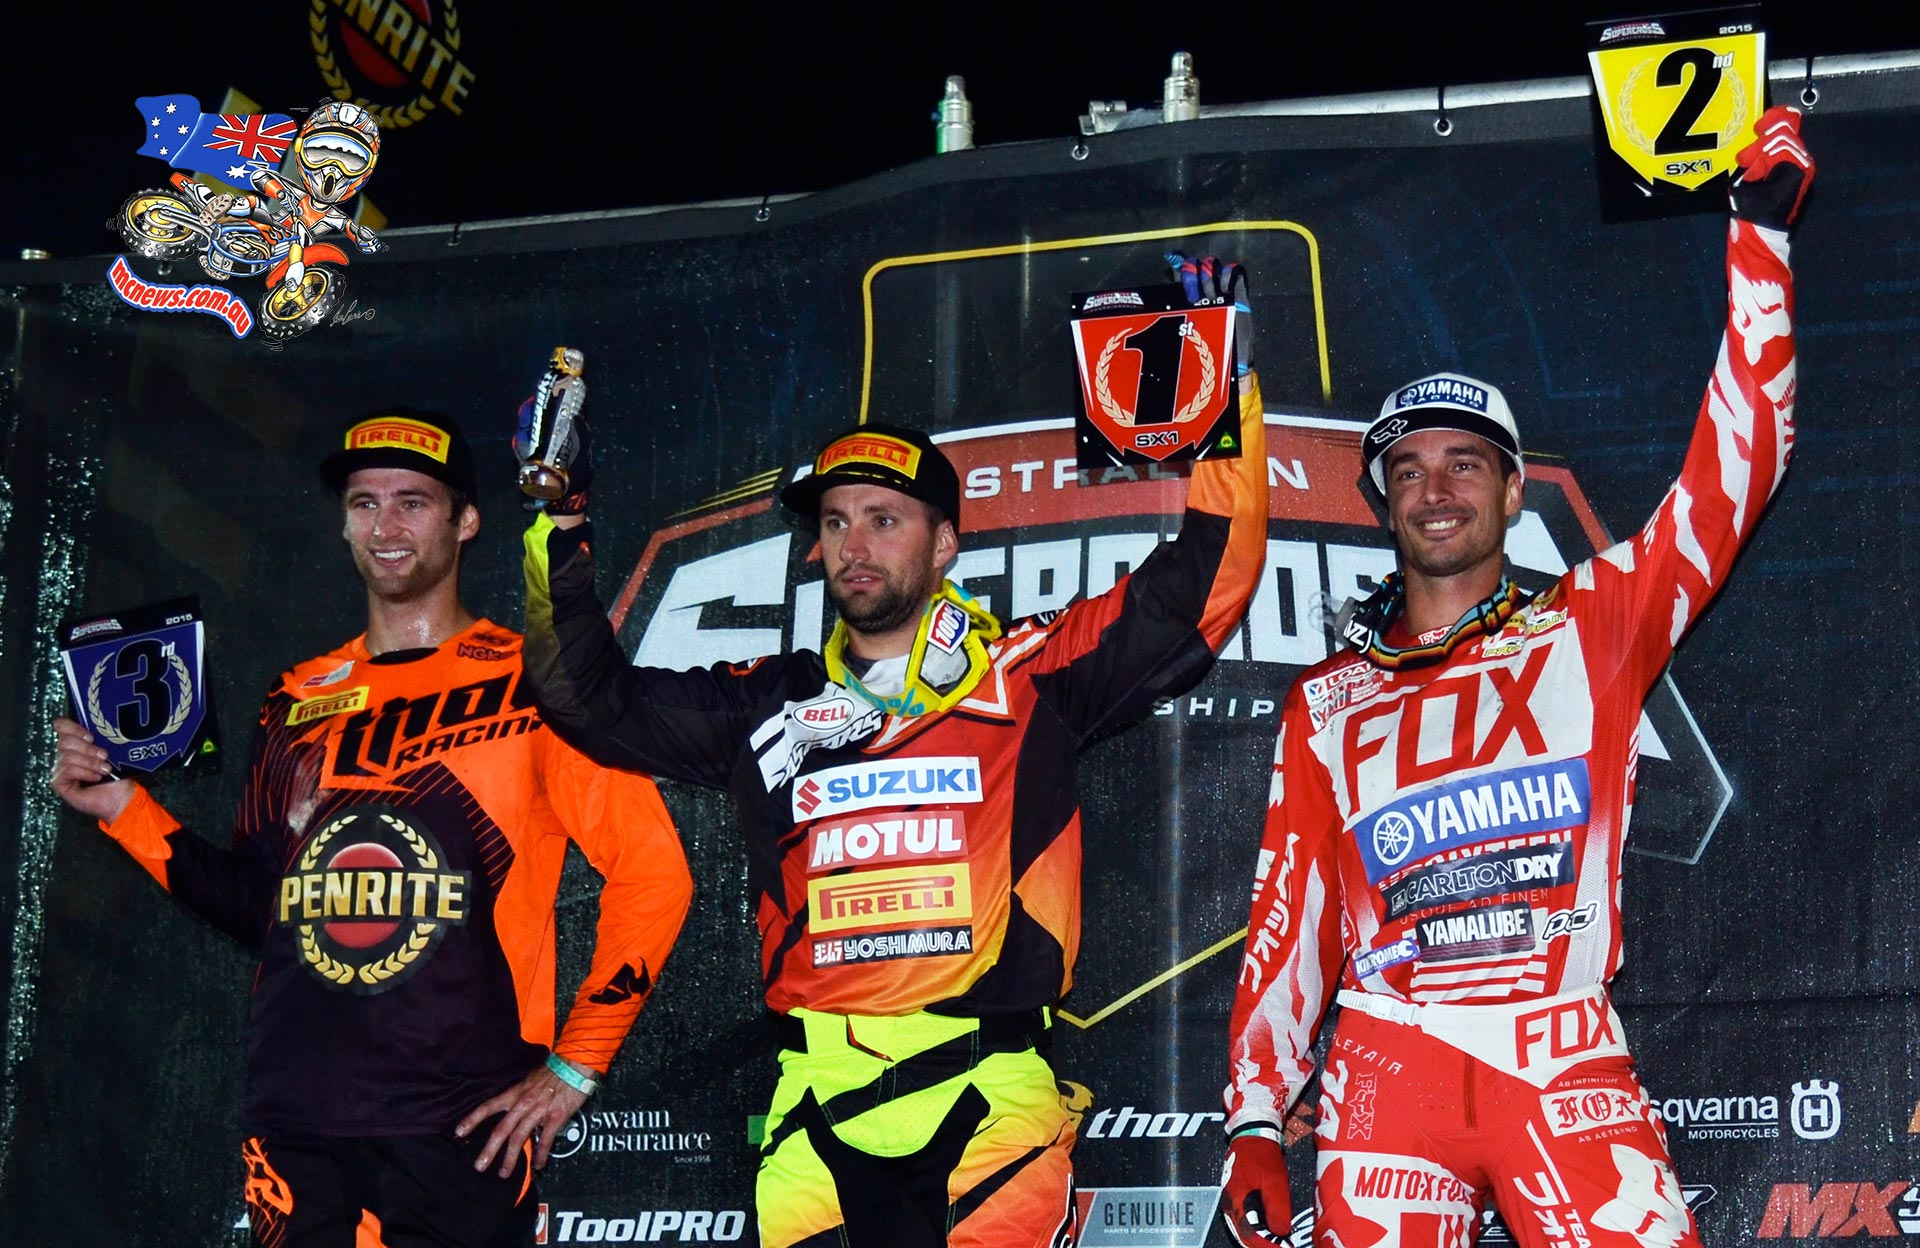 SX1 Podium: L-R Gavin Faith (3rd), Matt Moss (1st) and Dan Reardon (2nd) share the spoils atop the SX1 podium at 2015 Australian Supercross Championship opening round at Bathurst, NSW.